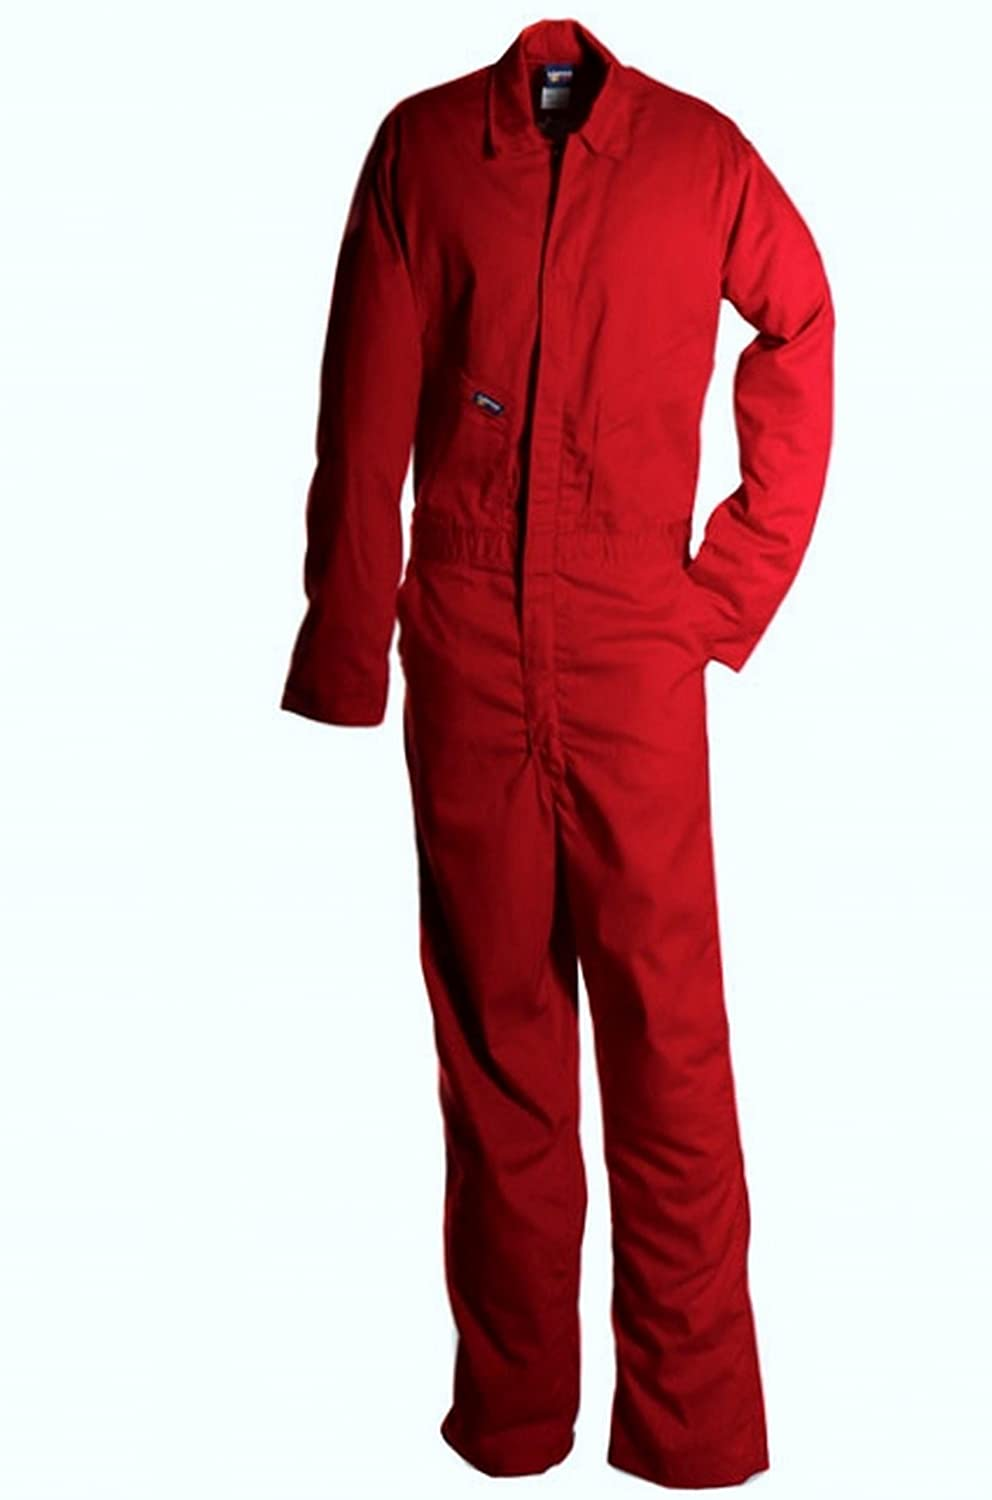 LAPCO CVFRD7RE-SM ST Lightweight 100-Percent Cotton Flame Resistant Deluxe Coverall, Red, Small, Short